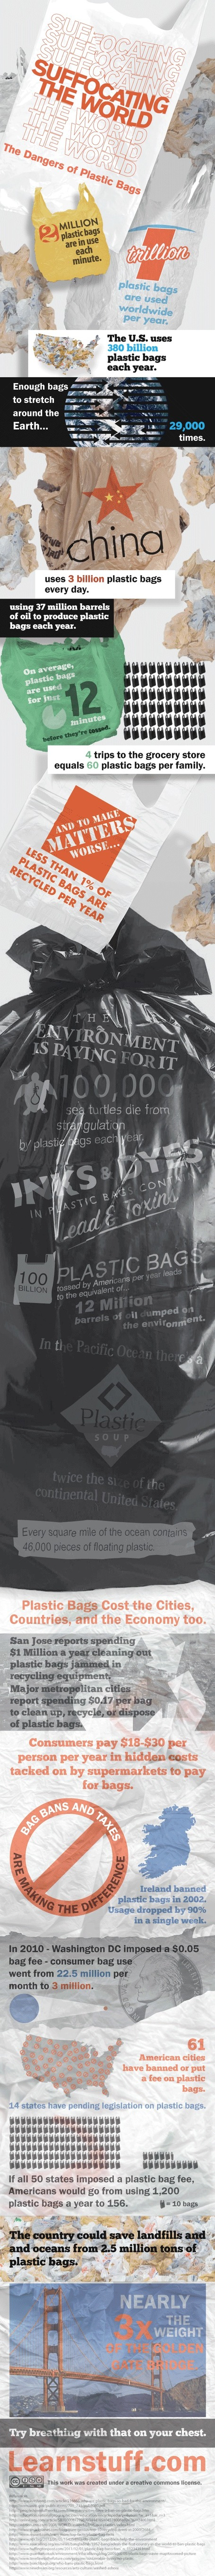 Ecology of Plastic Bags | Geography Education | Scoop.it